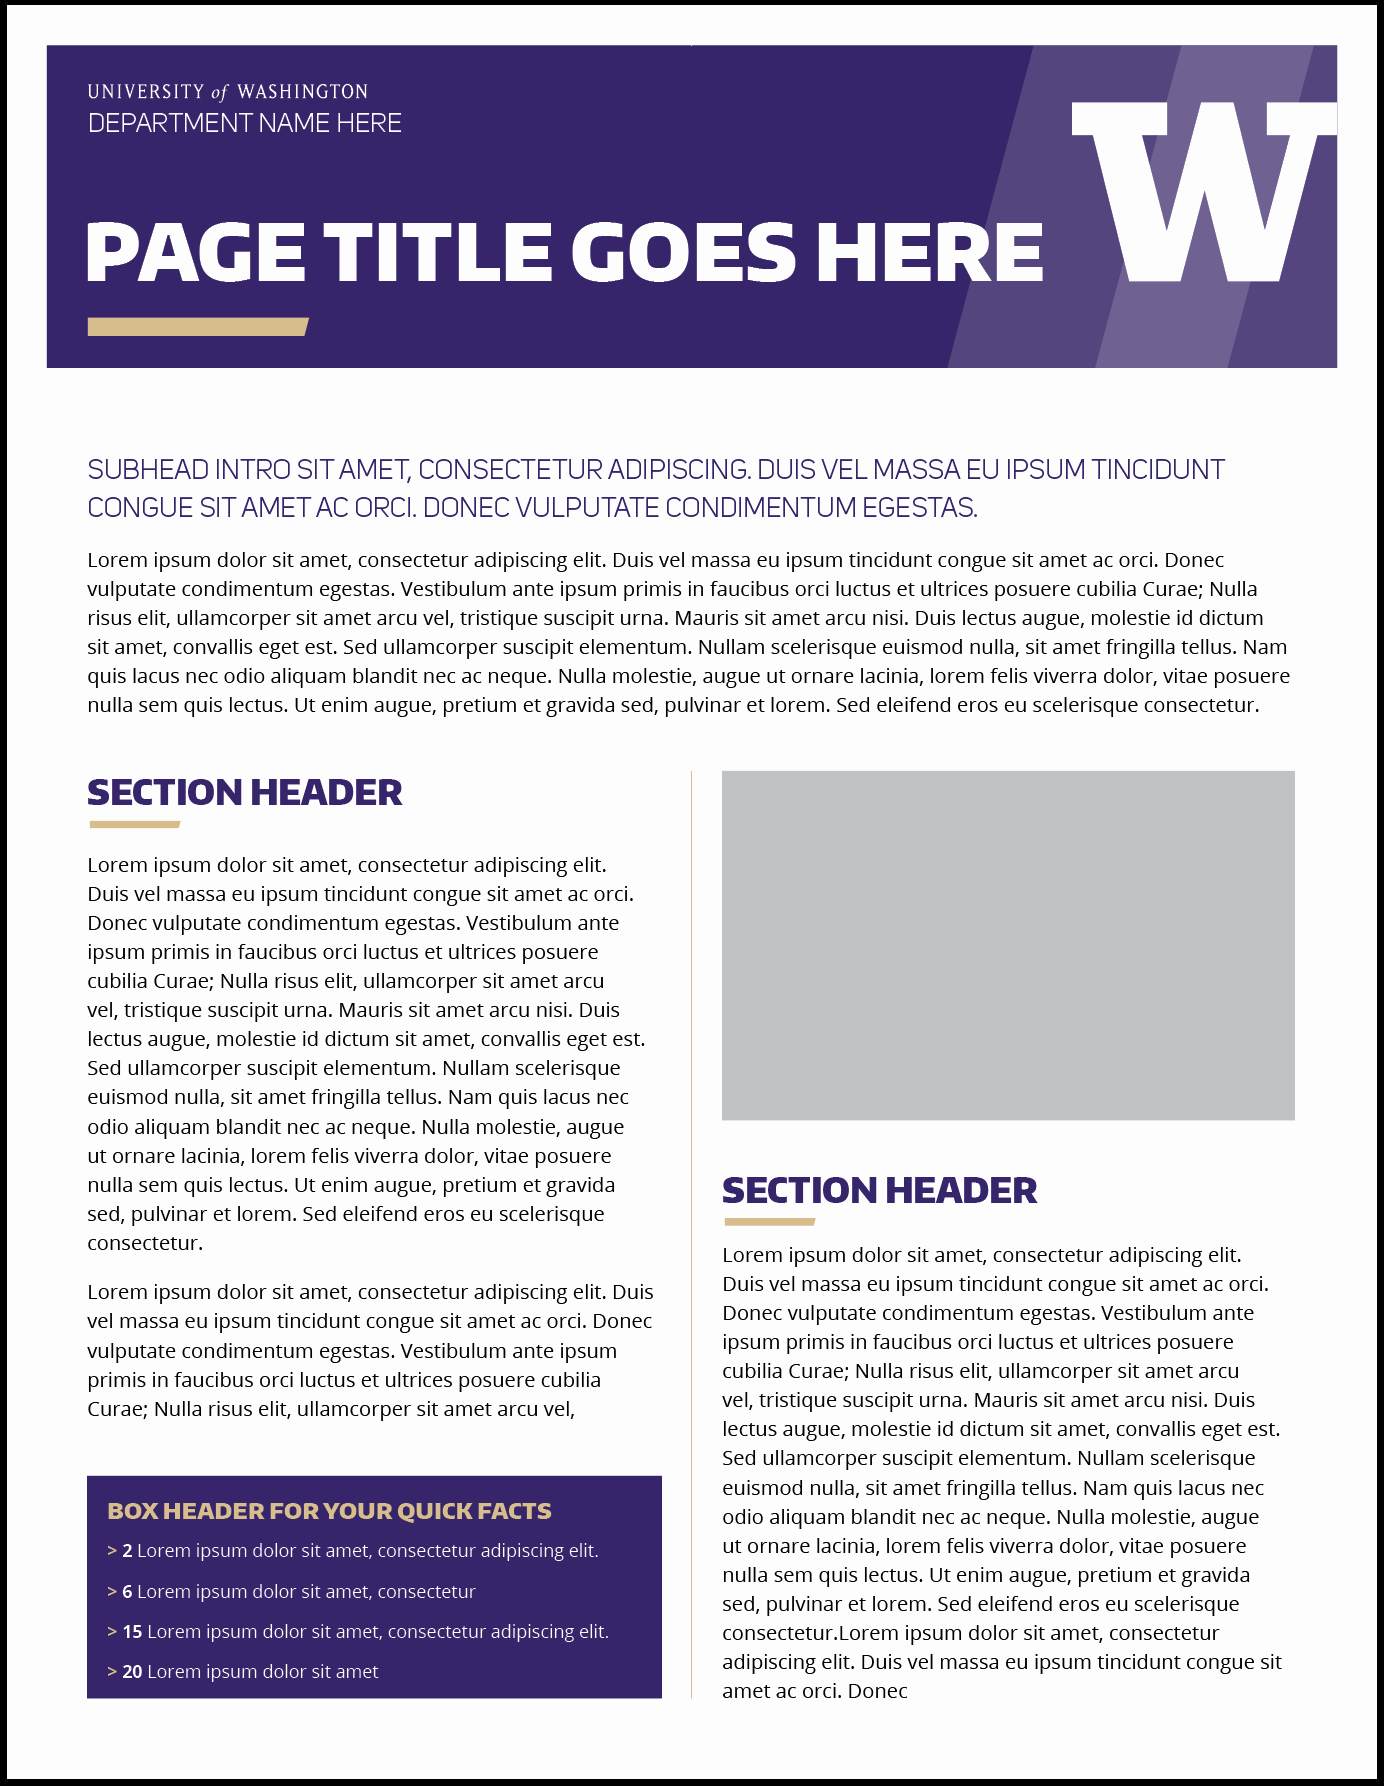 One Page Fact Sheet Template Unique Fact Sheet